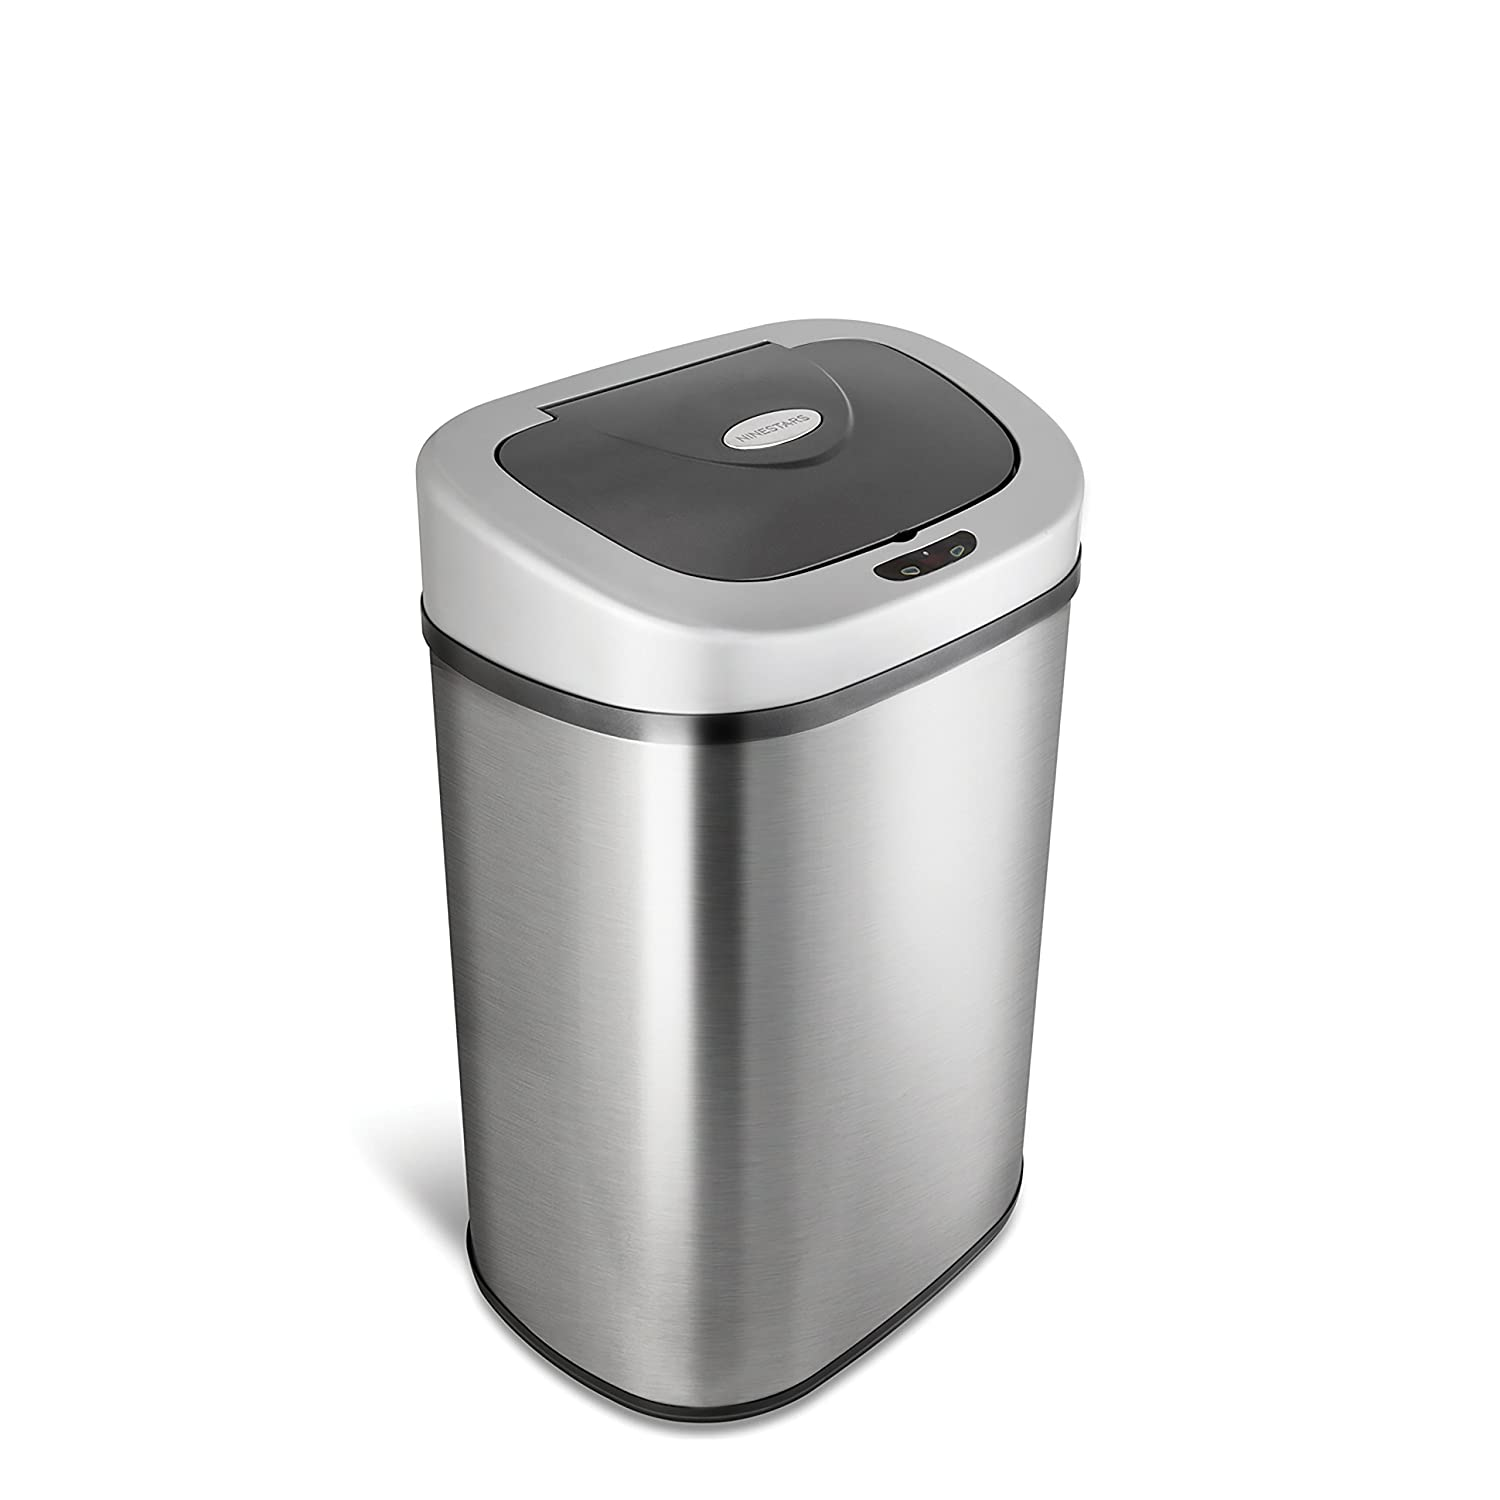 NINESTARS Automatic Touchless Infrared Motion Sensor Trash Can with Stainless Steel Base & Oval, Silver/Black Lid 21 Gal